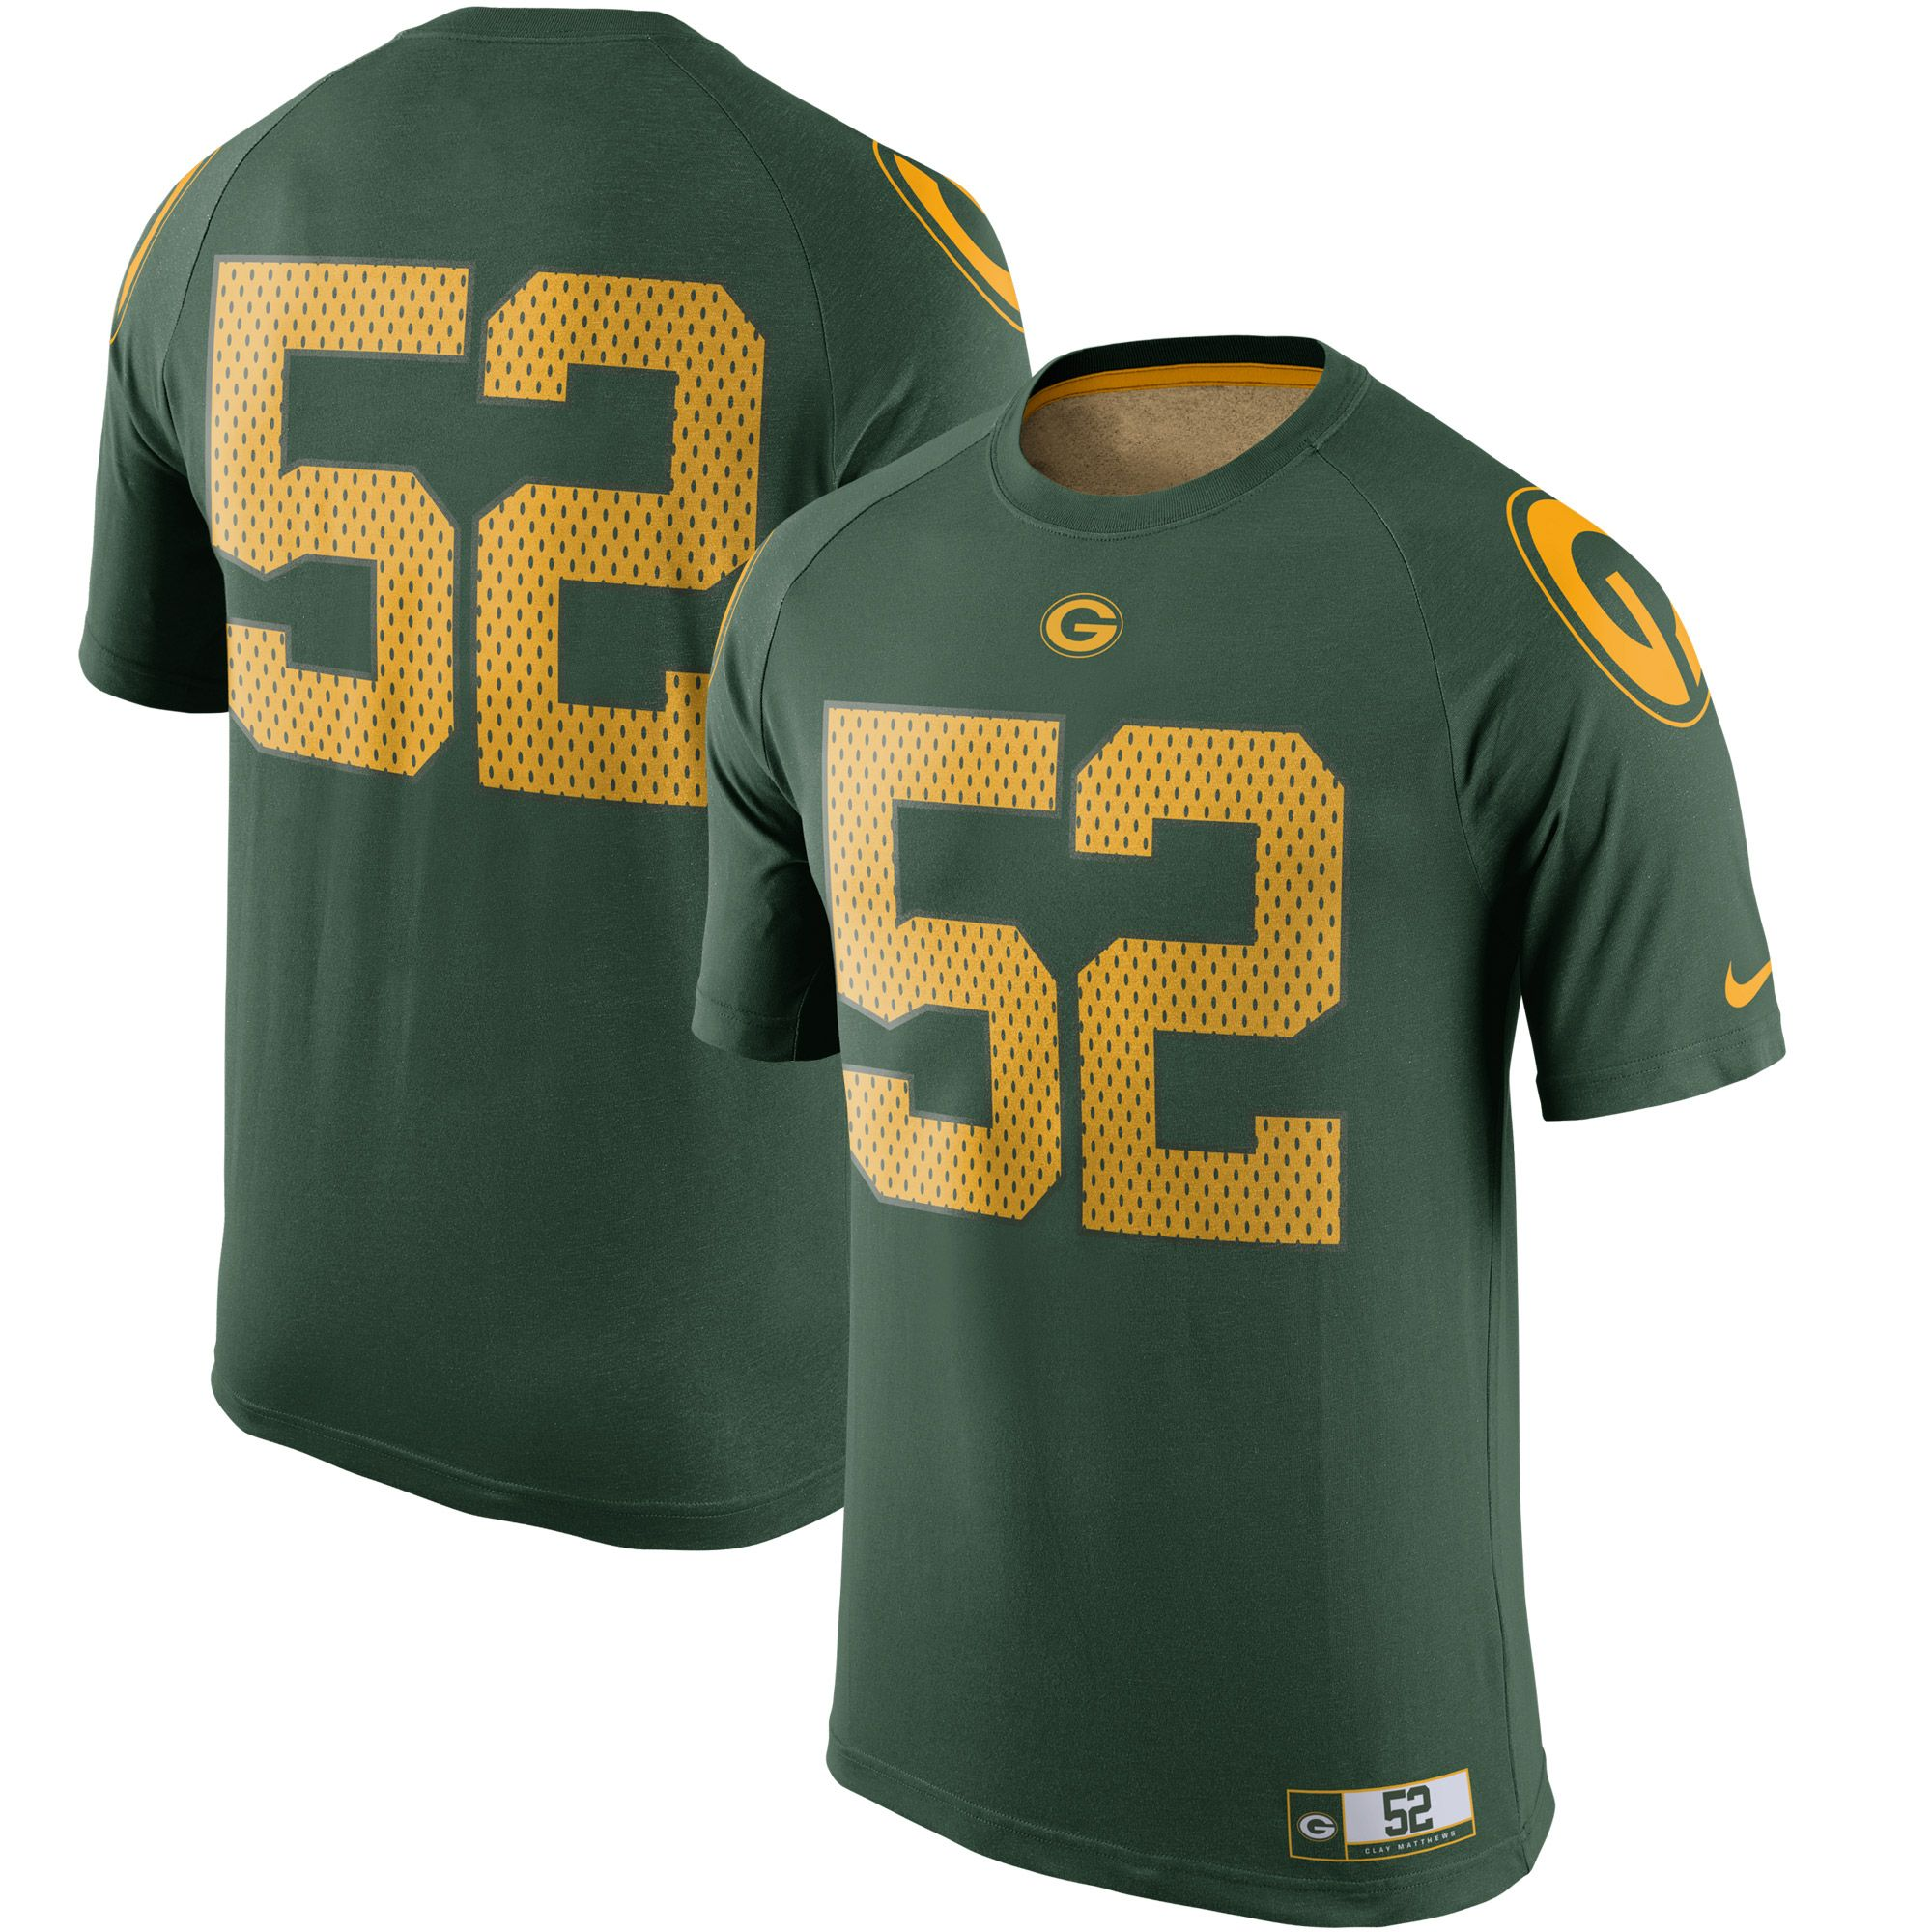 online store b425f 854d5 NFL Clay Matthews Green Bay Packers Nike New Day Name ...